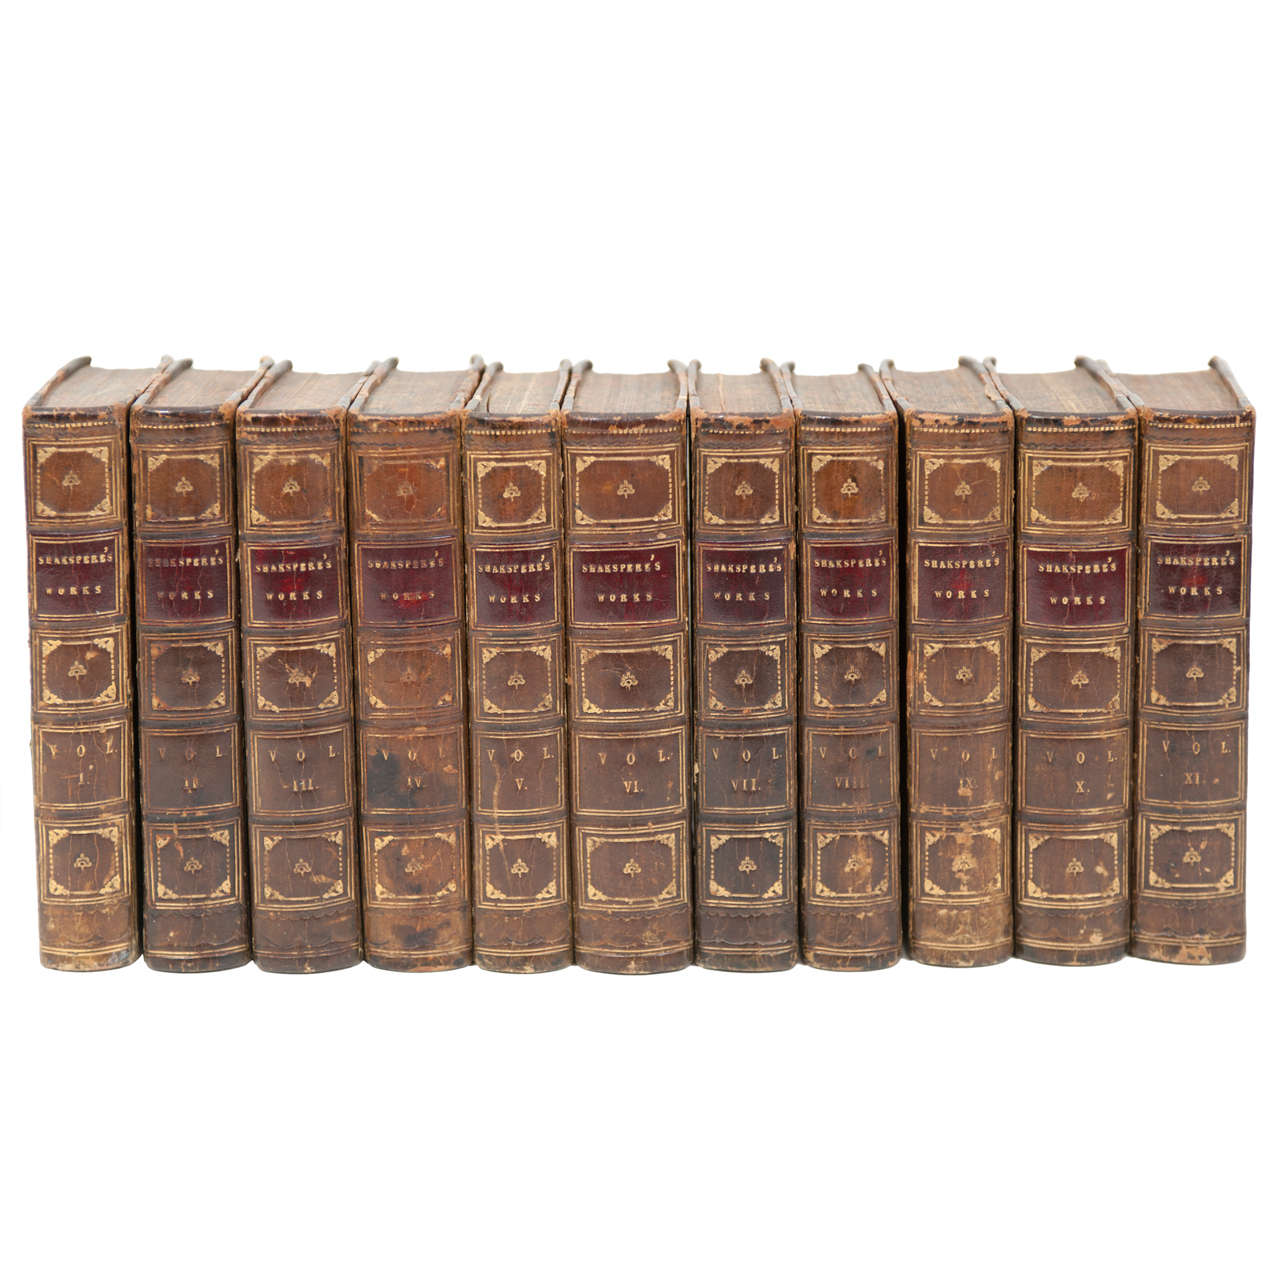 Leather-bound set of William Shakespeare's complete works, 1843